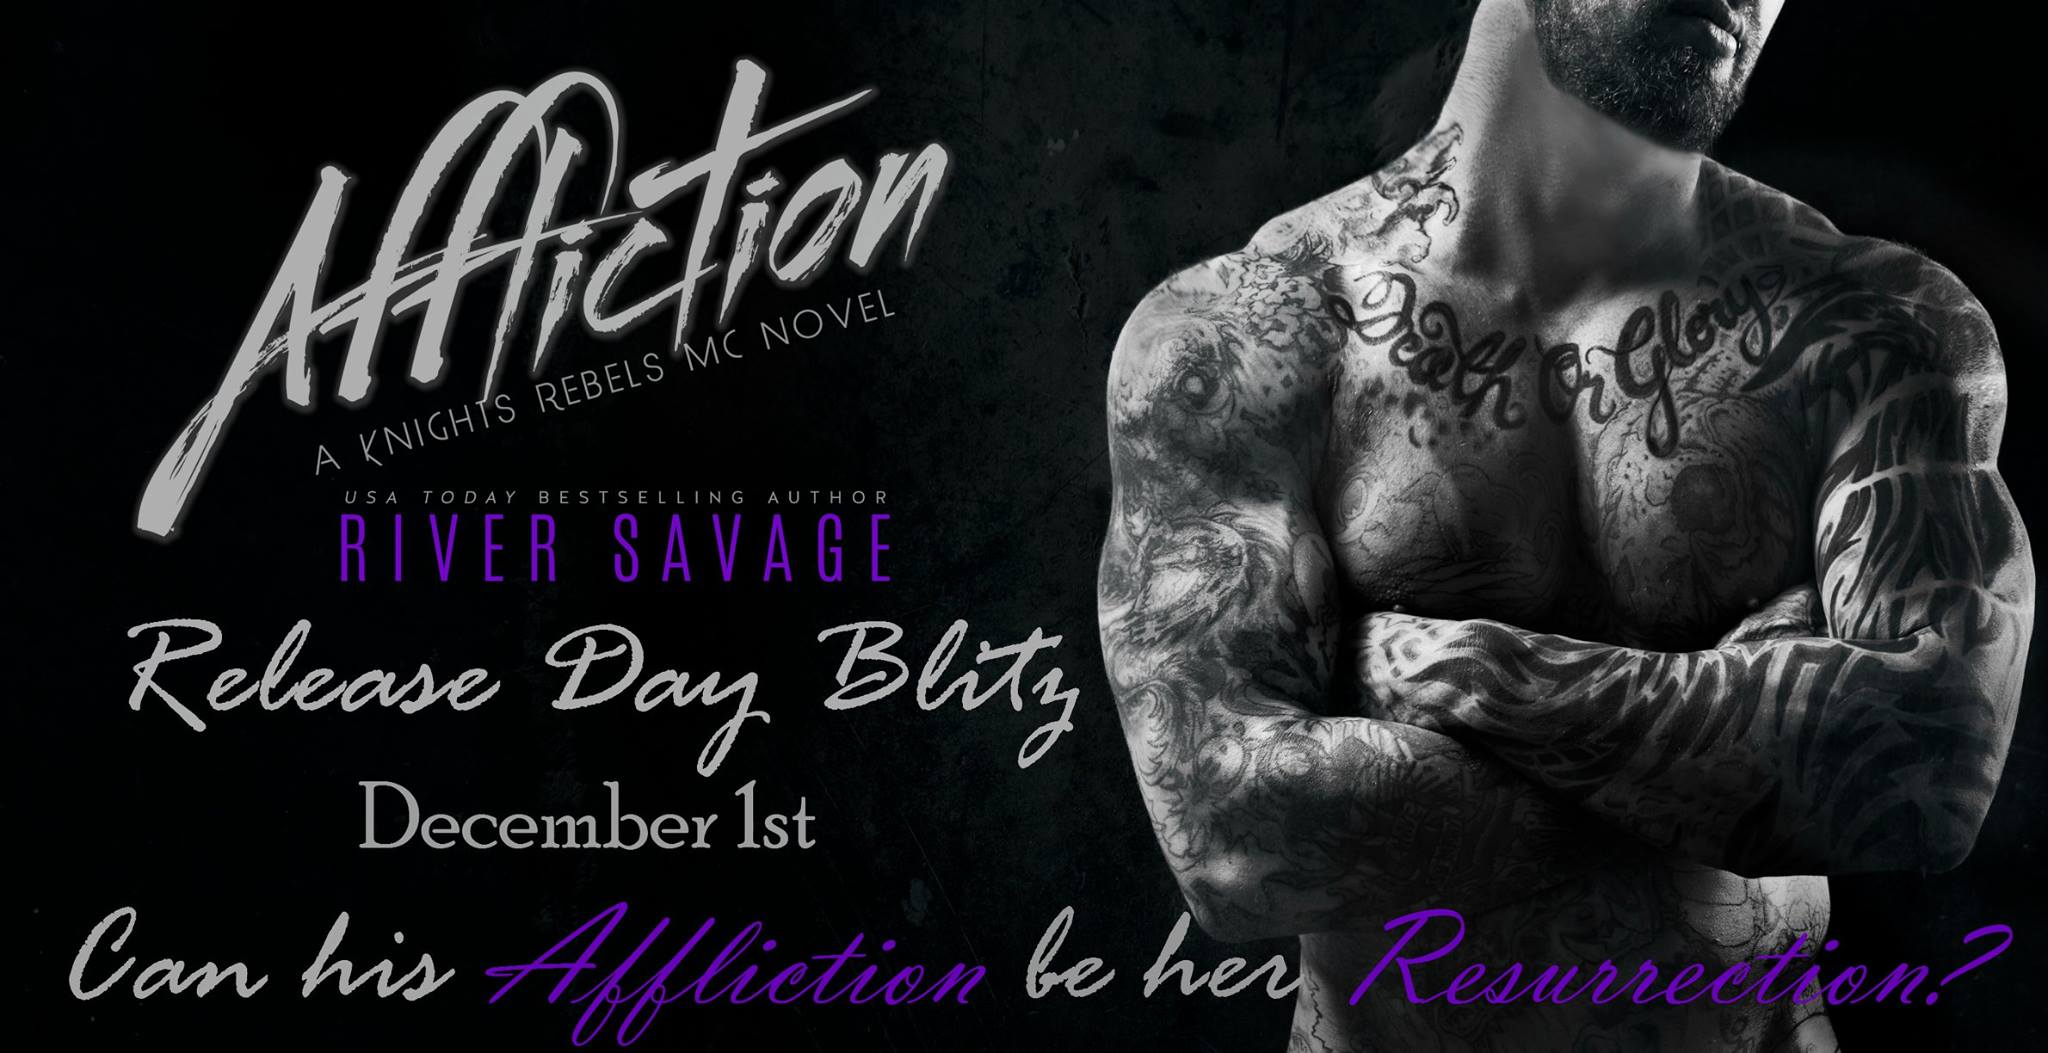 Book It – In News Today: Feel The Affliction, River Savage Style!